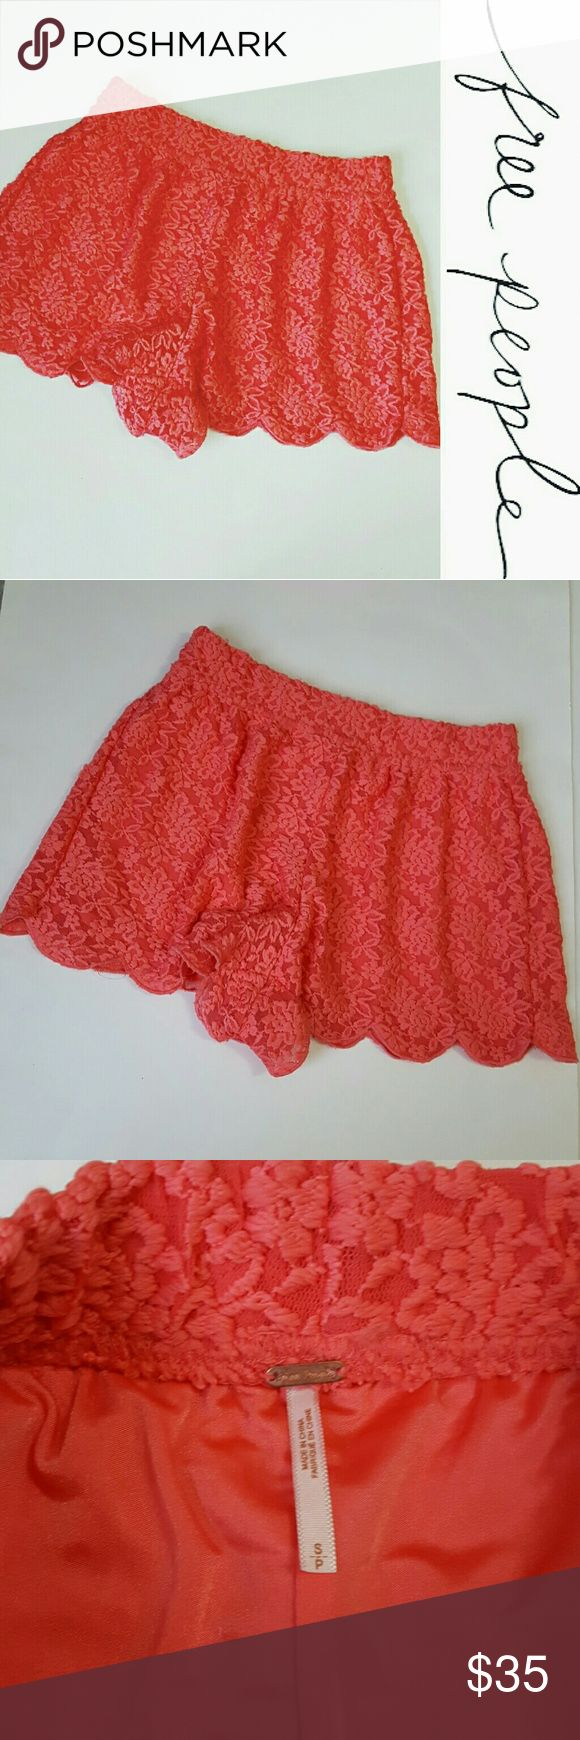 Free People | scallop lace shorts! Small In excellent condition! Gorgeous Free People lace scallop shorts, size small. Coral color! Loose fit. 2 inch inseam. Free People Shorts